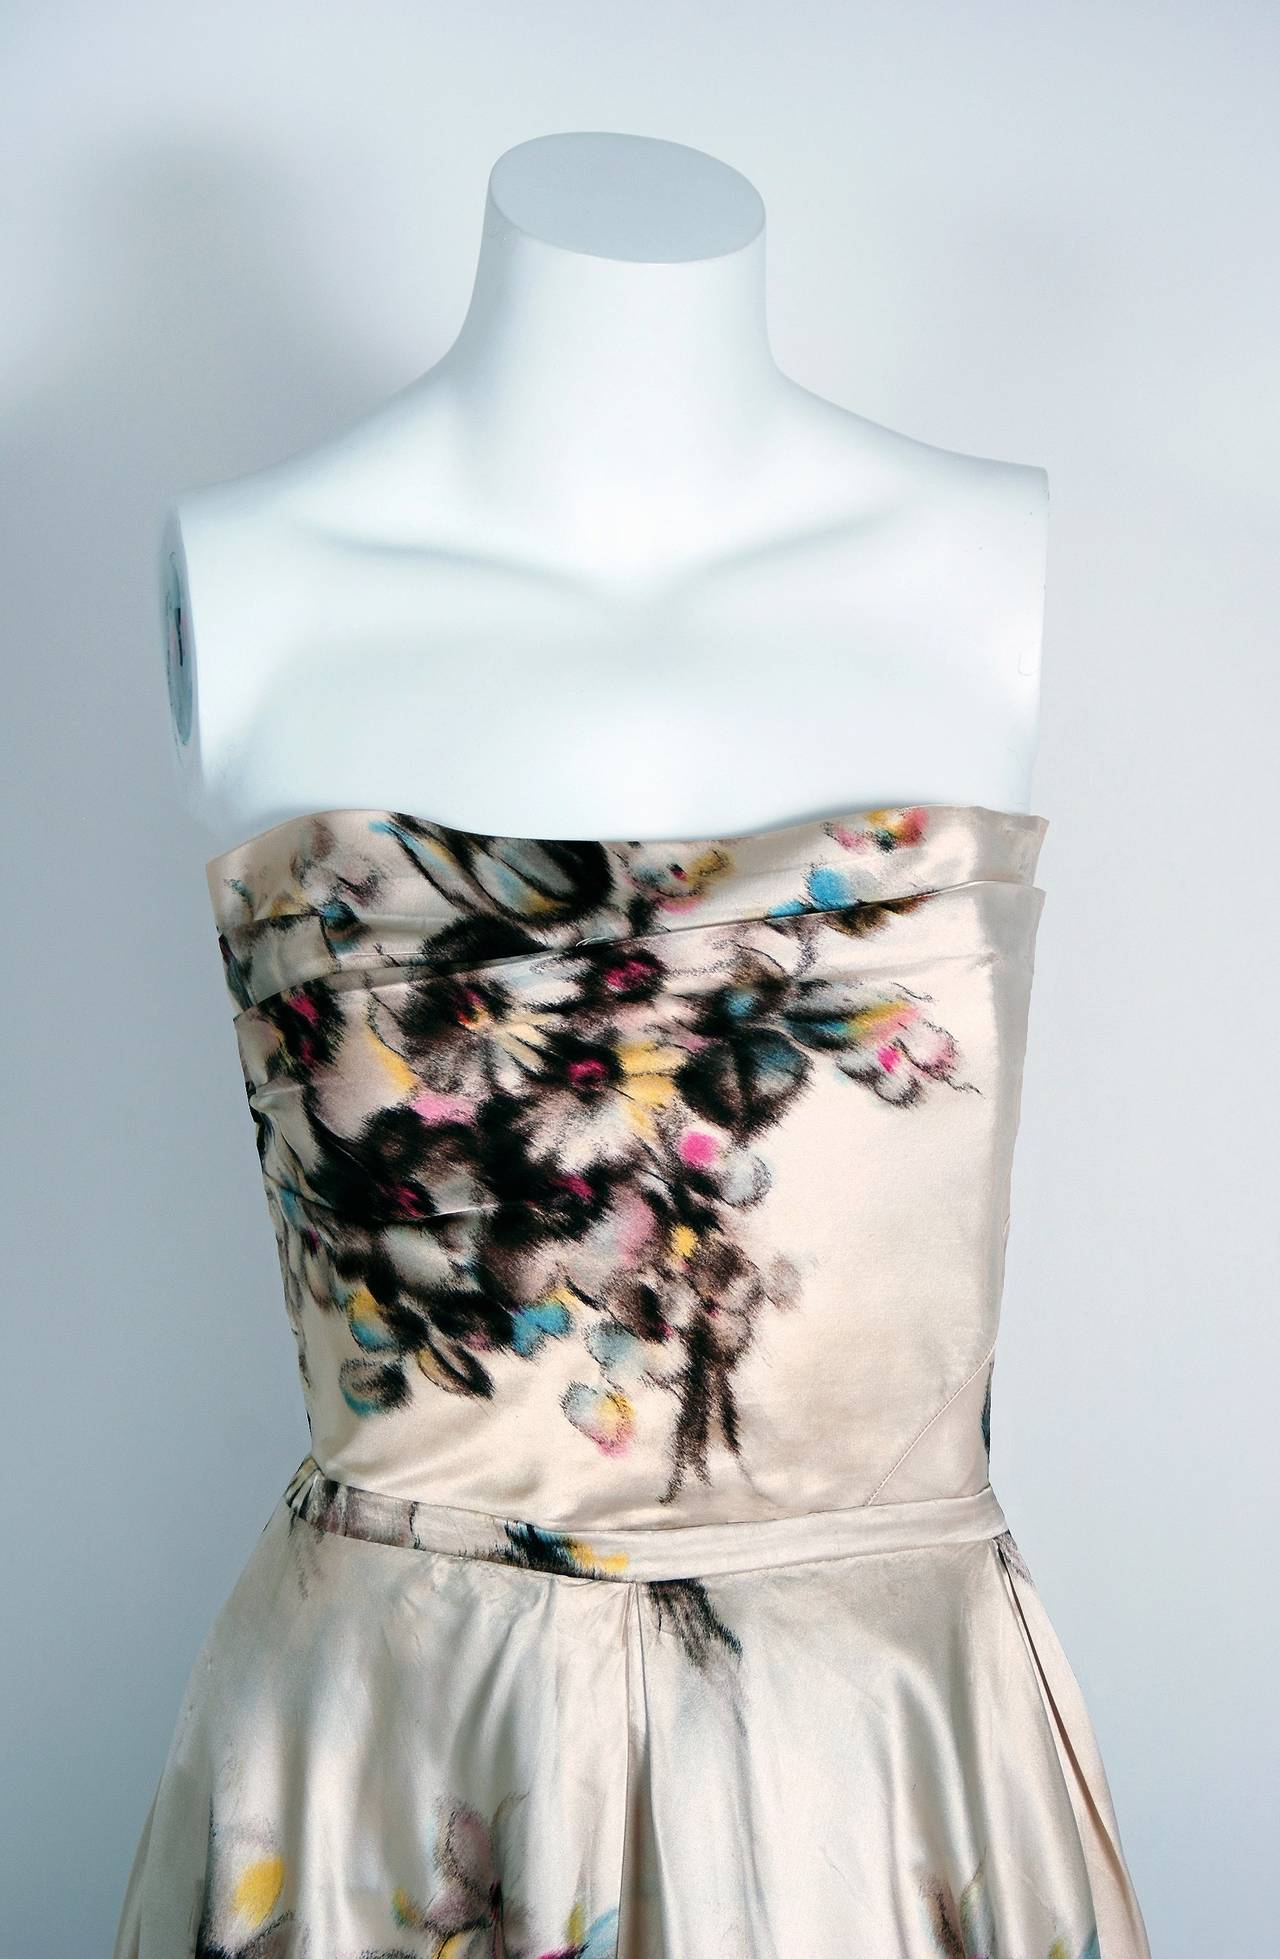 """Breathtaking Jeanne Lafaurie Couture watercolor garden gown from the 1950's """"new look"""" era of fashion. Jeanne Lafaurie was a Paris couturiere, designing from 1925 until 1958, whose house was known for spectacular fabrics and fine draping. Andre"""